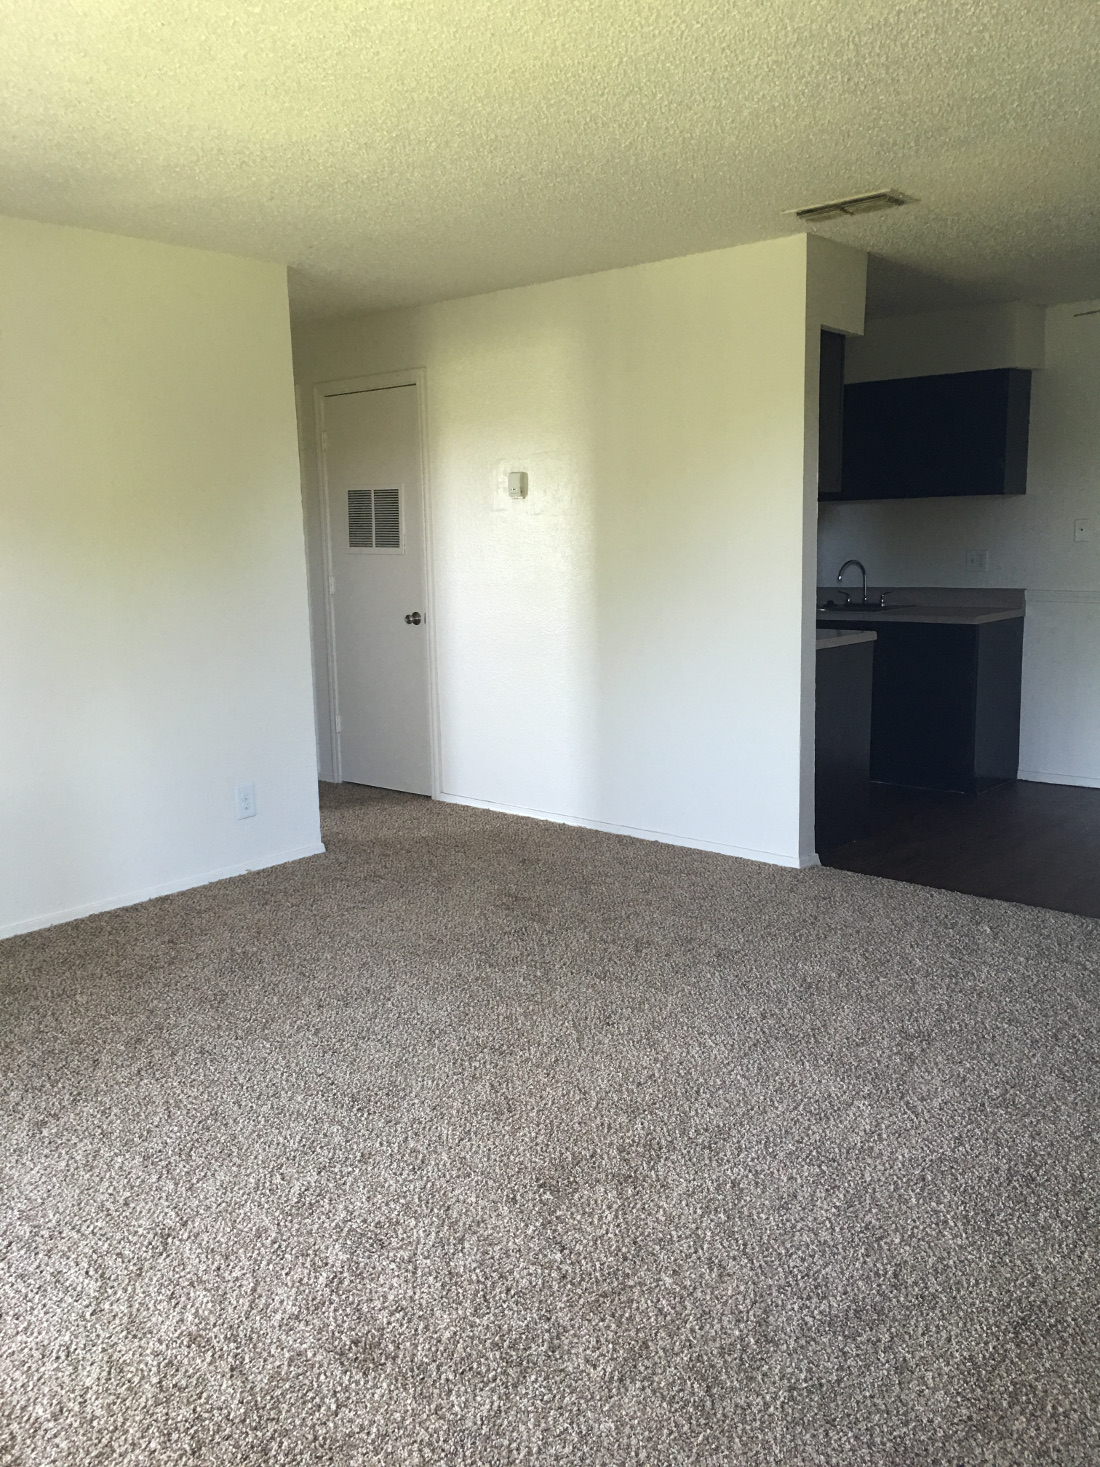 Spacious Floor Plans at Union Point Apartments in Tulsa, OK